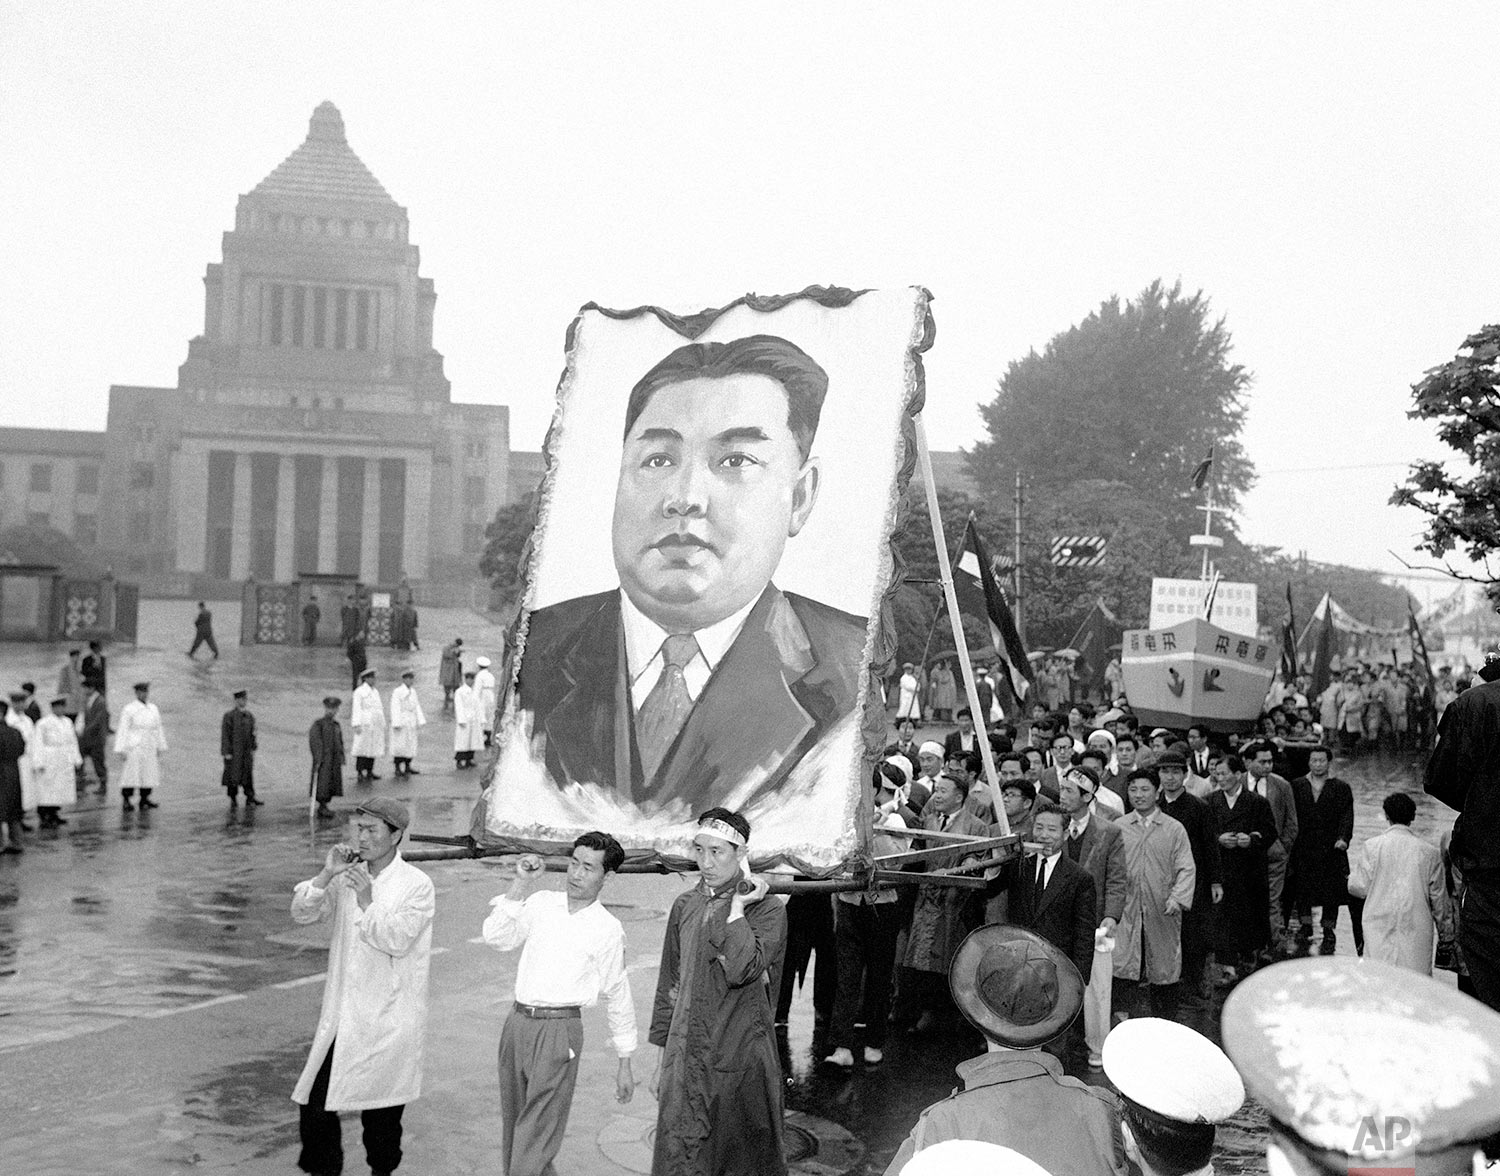 North Korean demonstrators carry a portrait of their country's Communist Prime Minister, Kim Il Sung, in front of the Japanese National Diet (parliament) building in Tokyo during May Day festivities on May 2, 1959. (AP Photo)